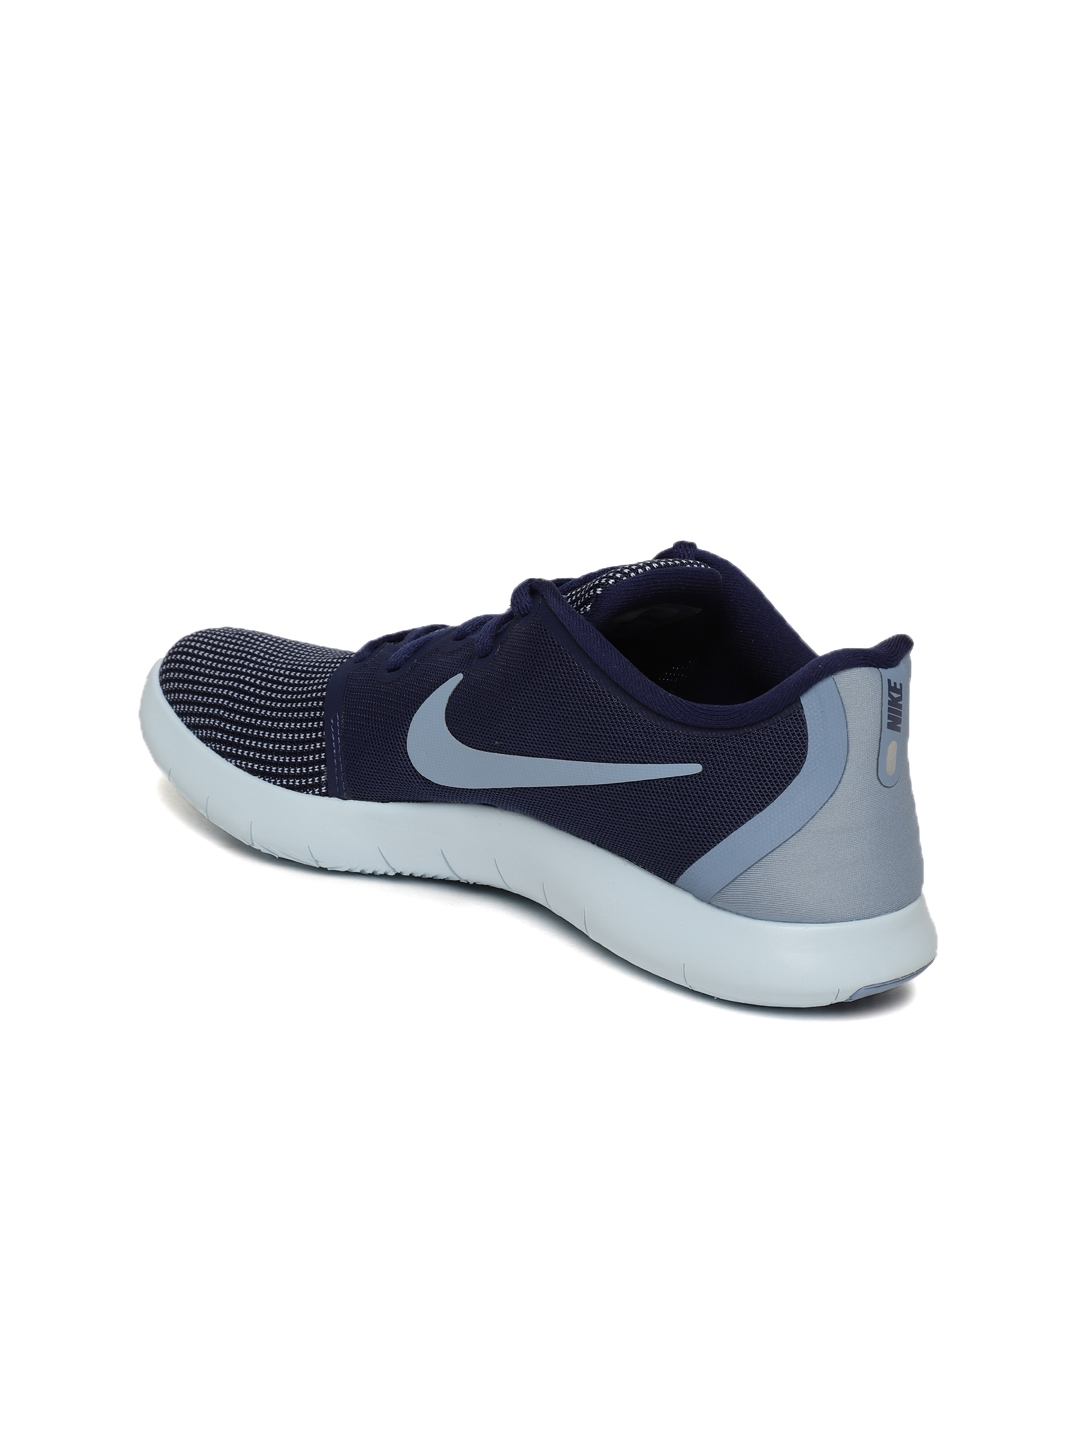 407e18dc768a9 Buy Nike Women Navy Blue Flex Contact 2 Running Shoes - Sports Shoes ...